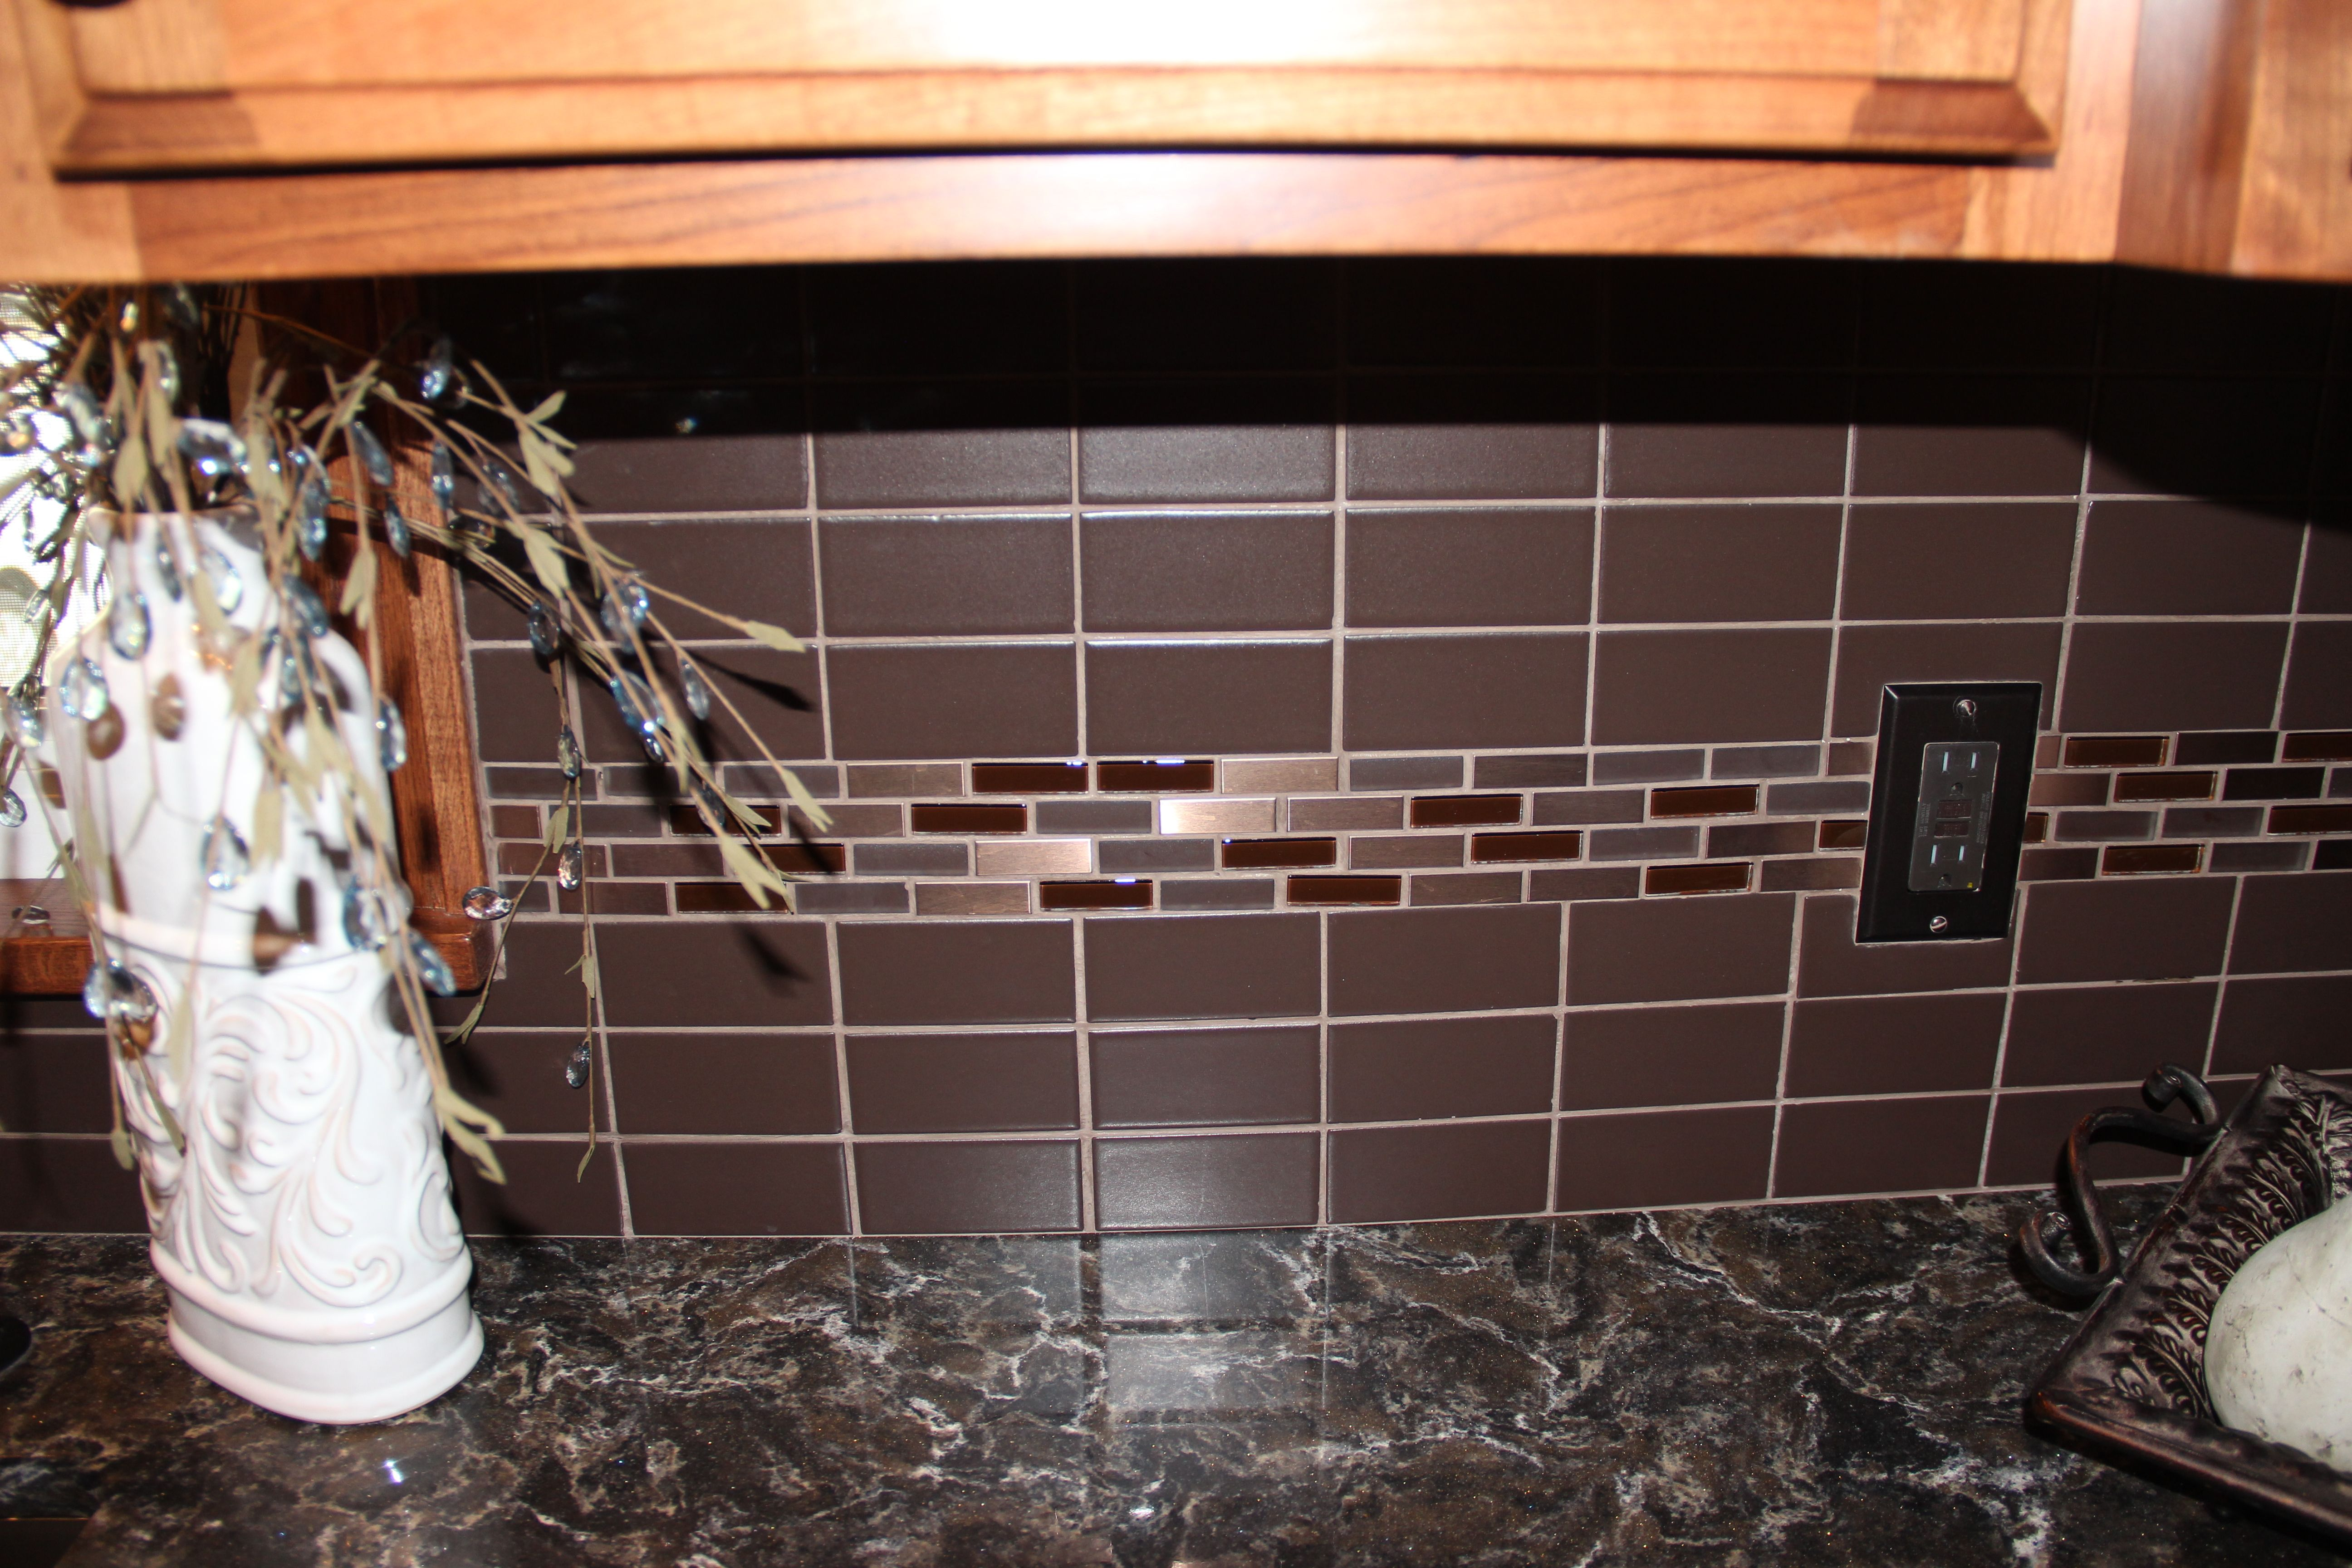 cambria harvest laundry room ideas | Custom tile and Cambria's Laneshaw...gorgeous! | Laundry ...